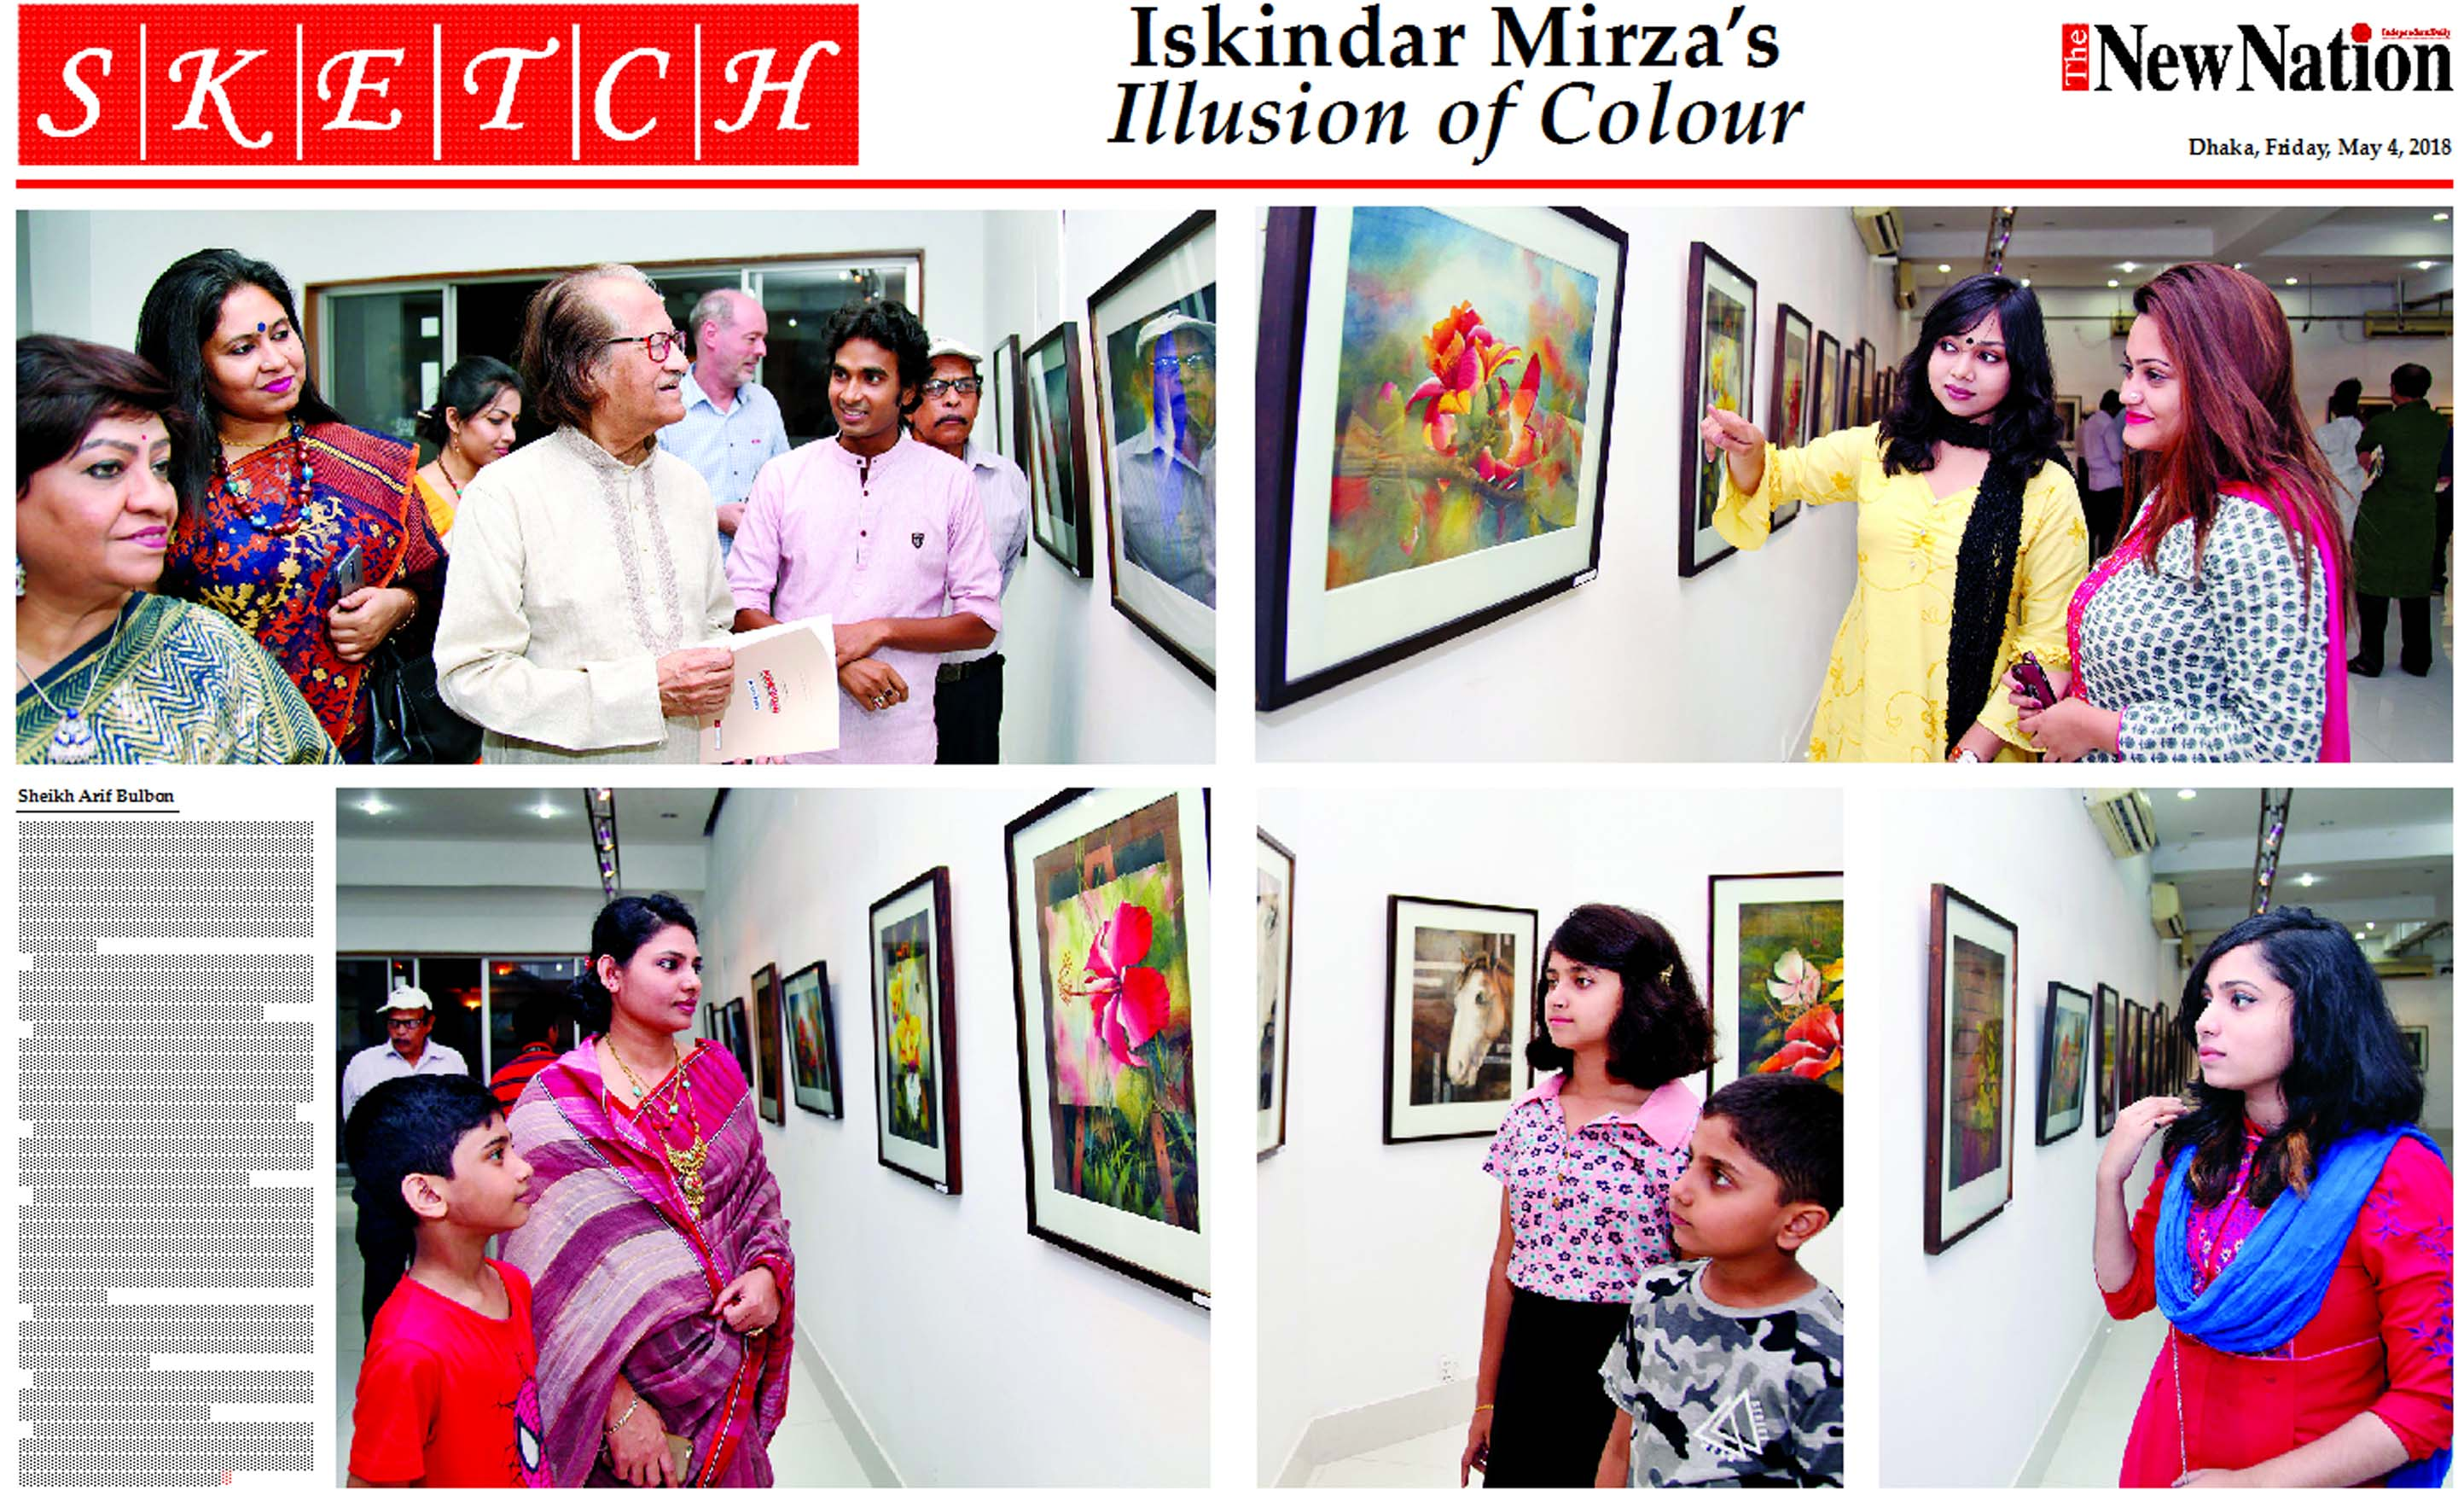 Iskindar Mirza's Illusion of Colour